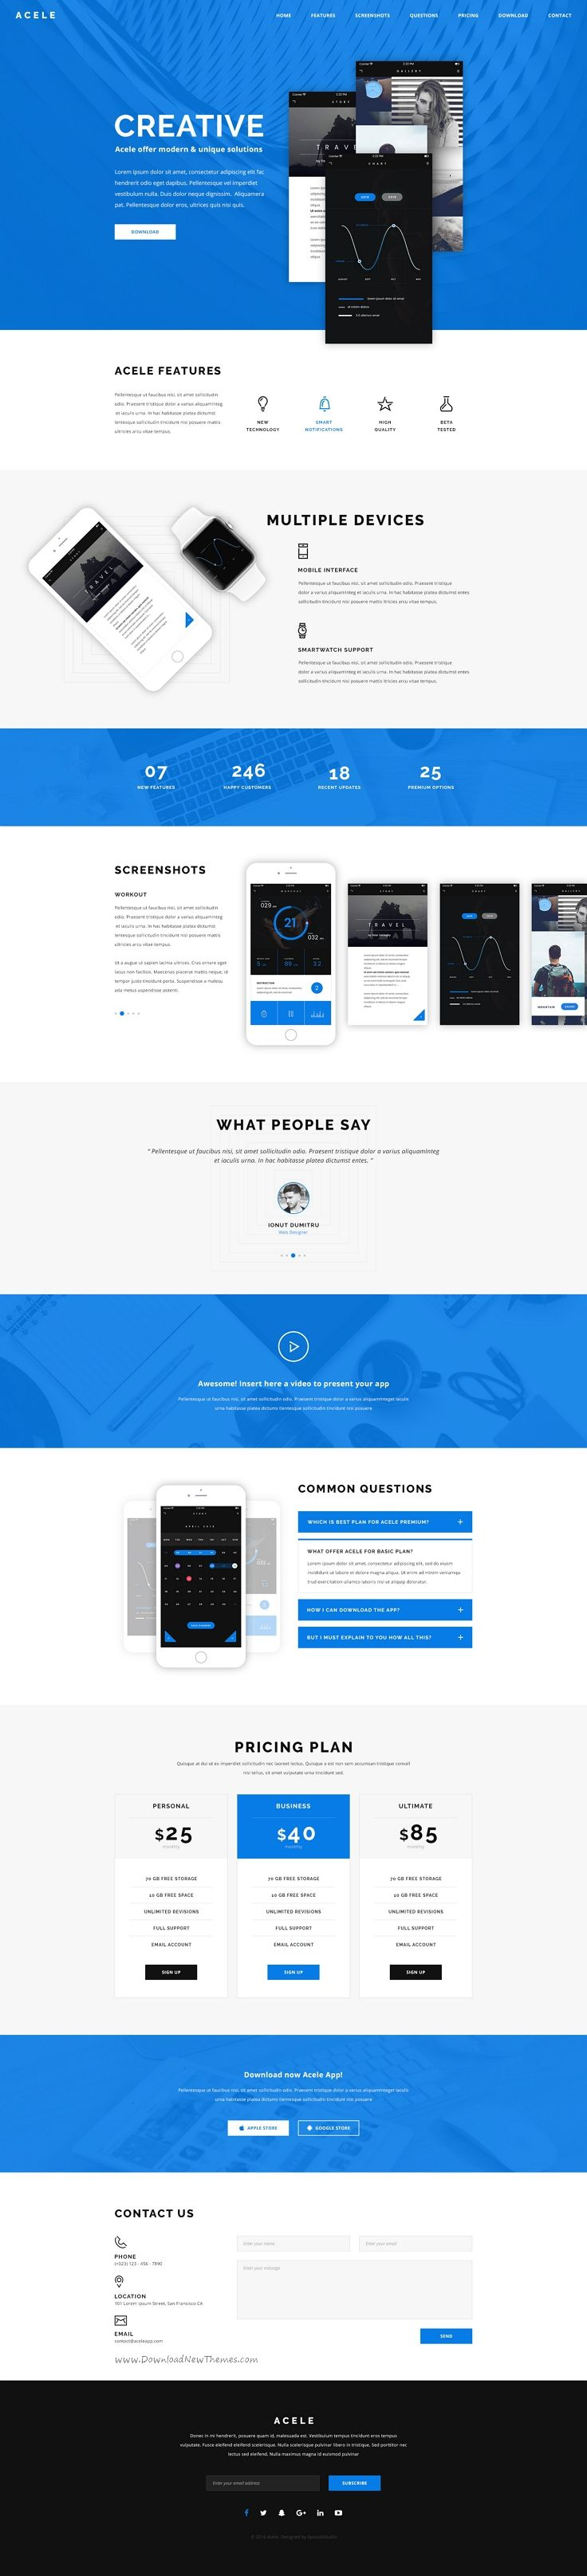 1262 best Website Designs images on Pinterest | Conference themes ...